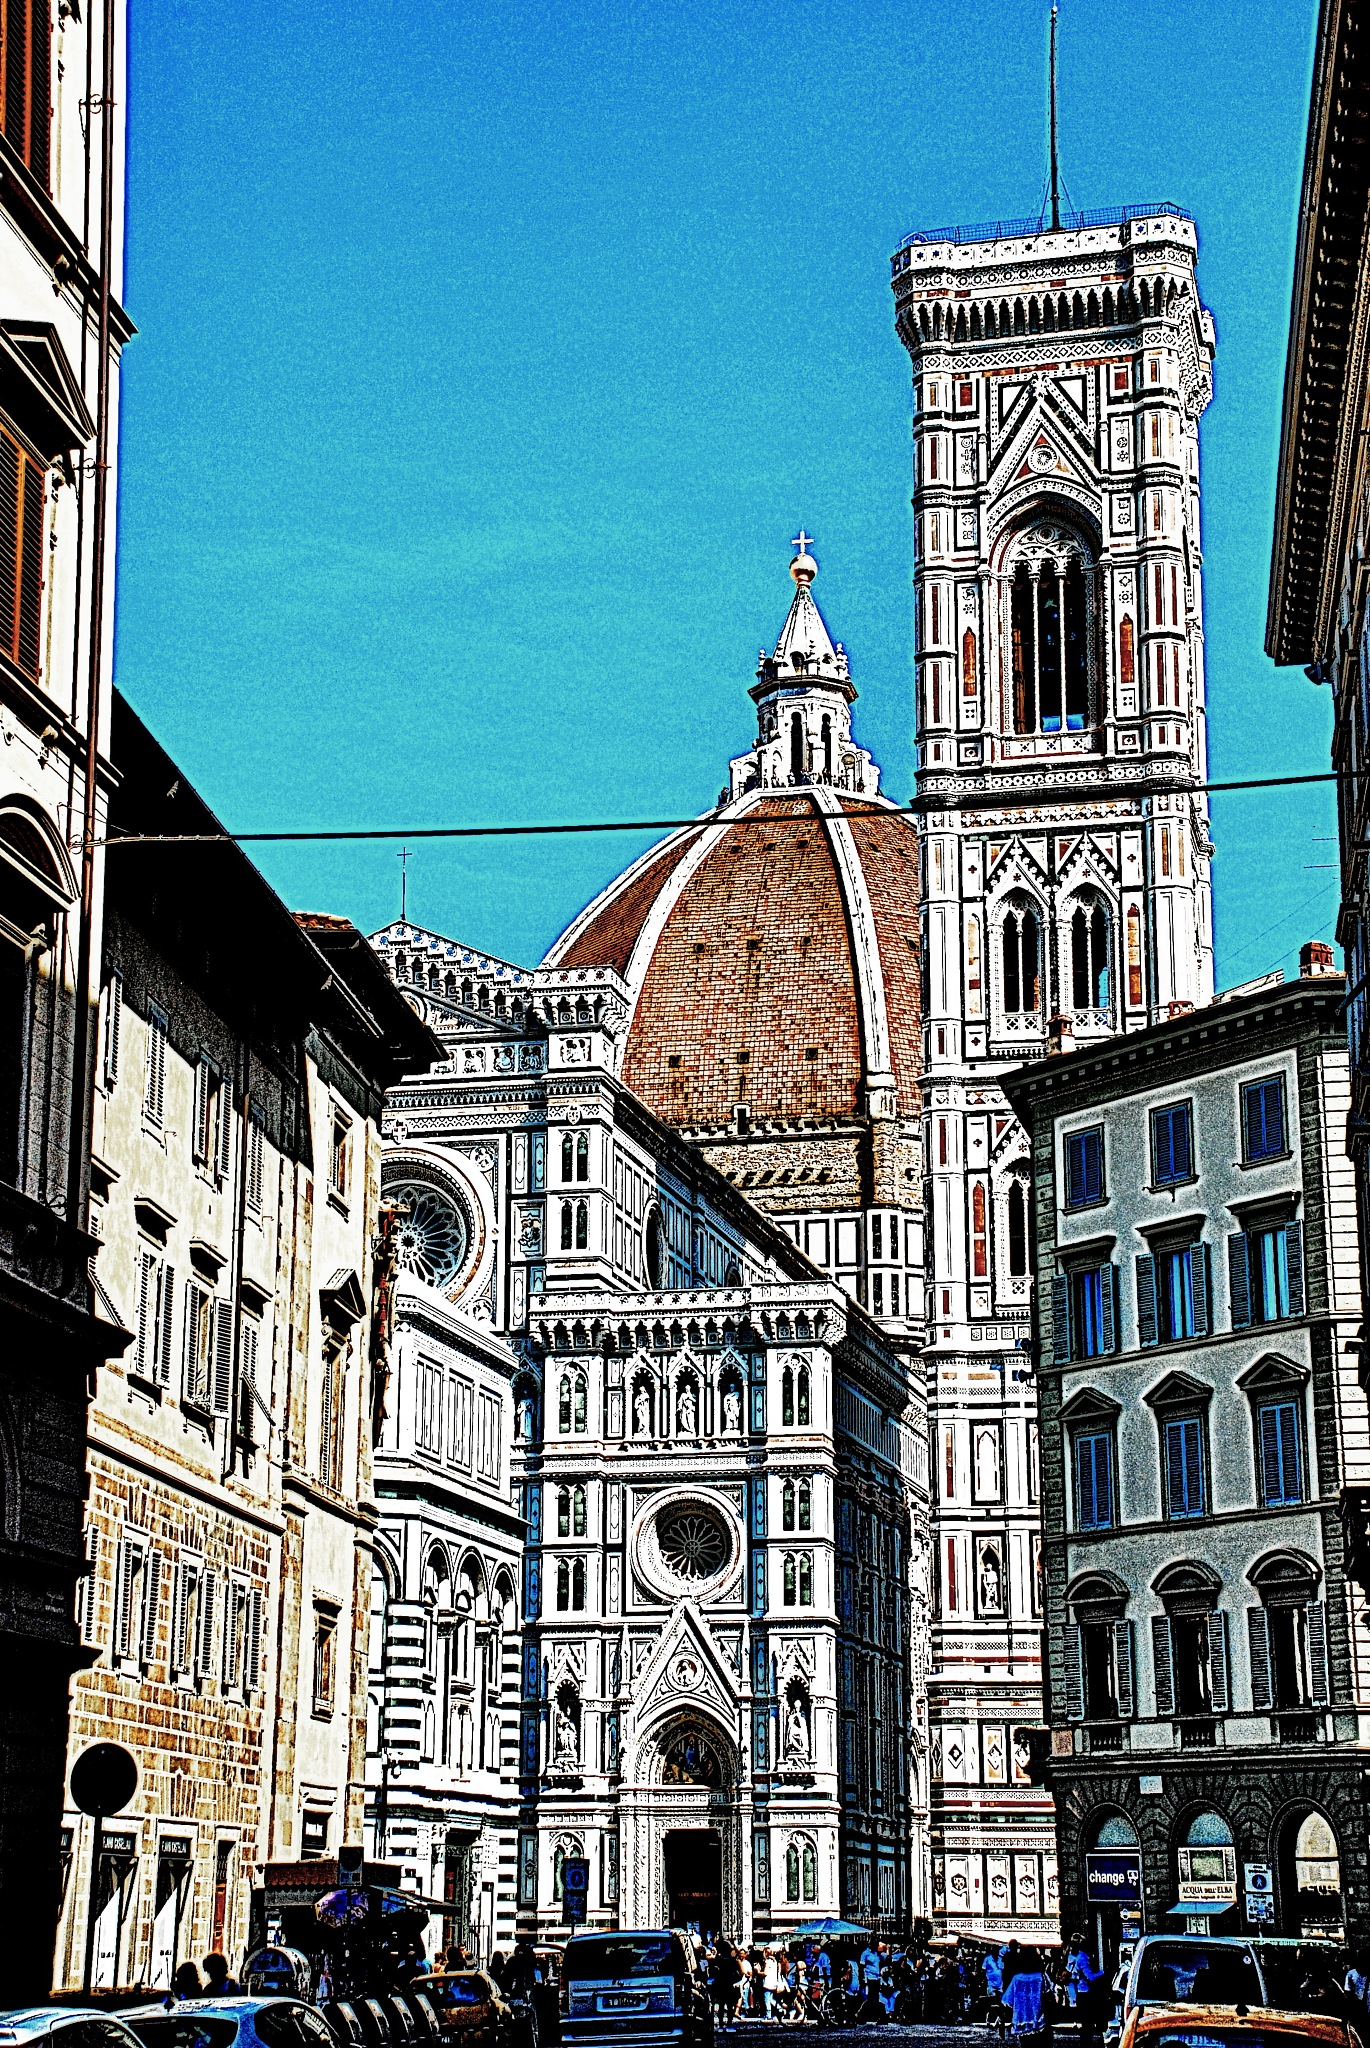 Duomo - Firenze by Hector Lopez